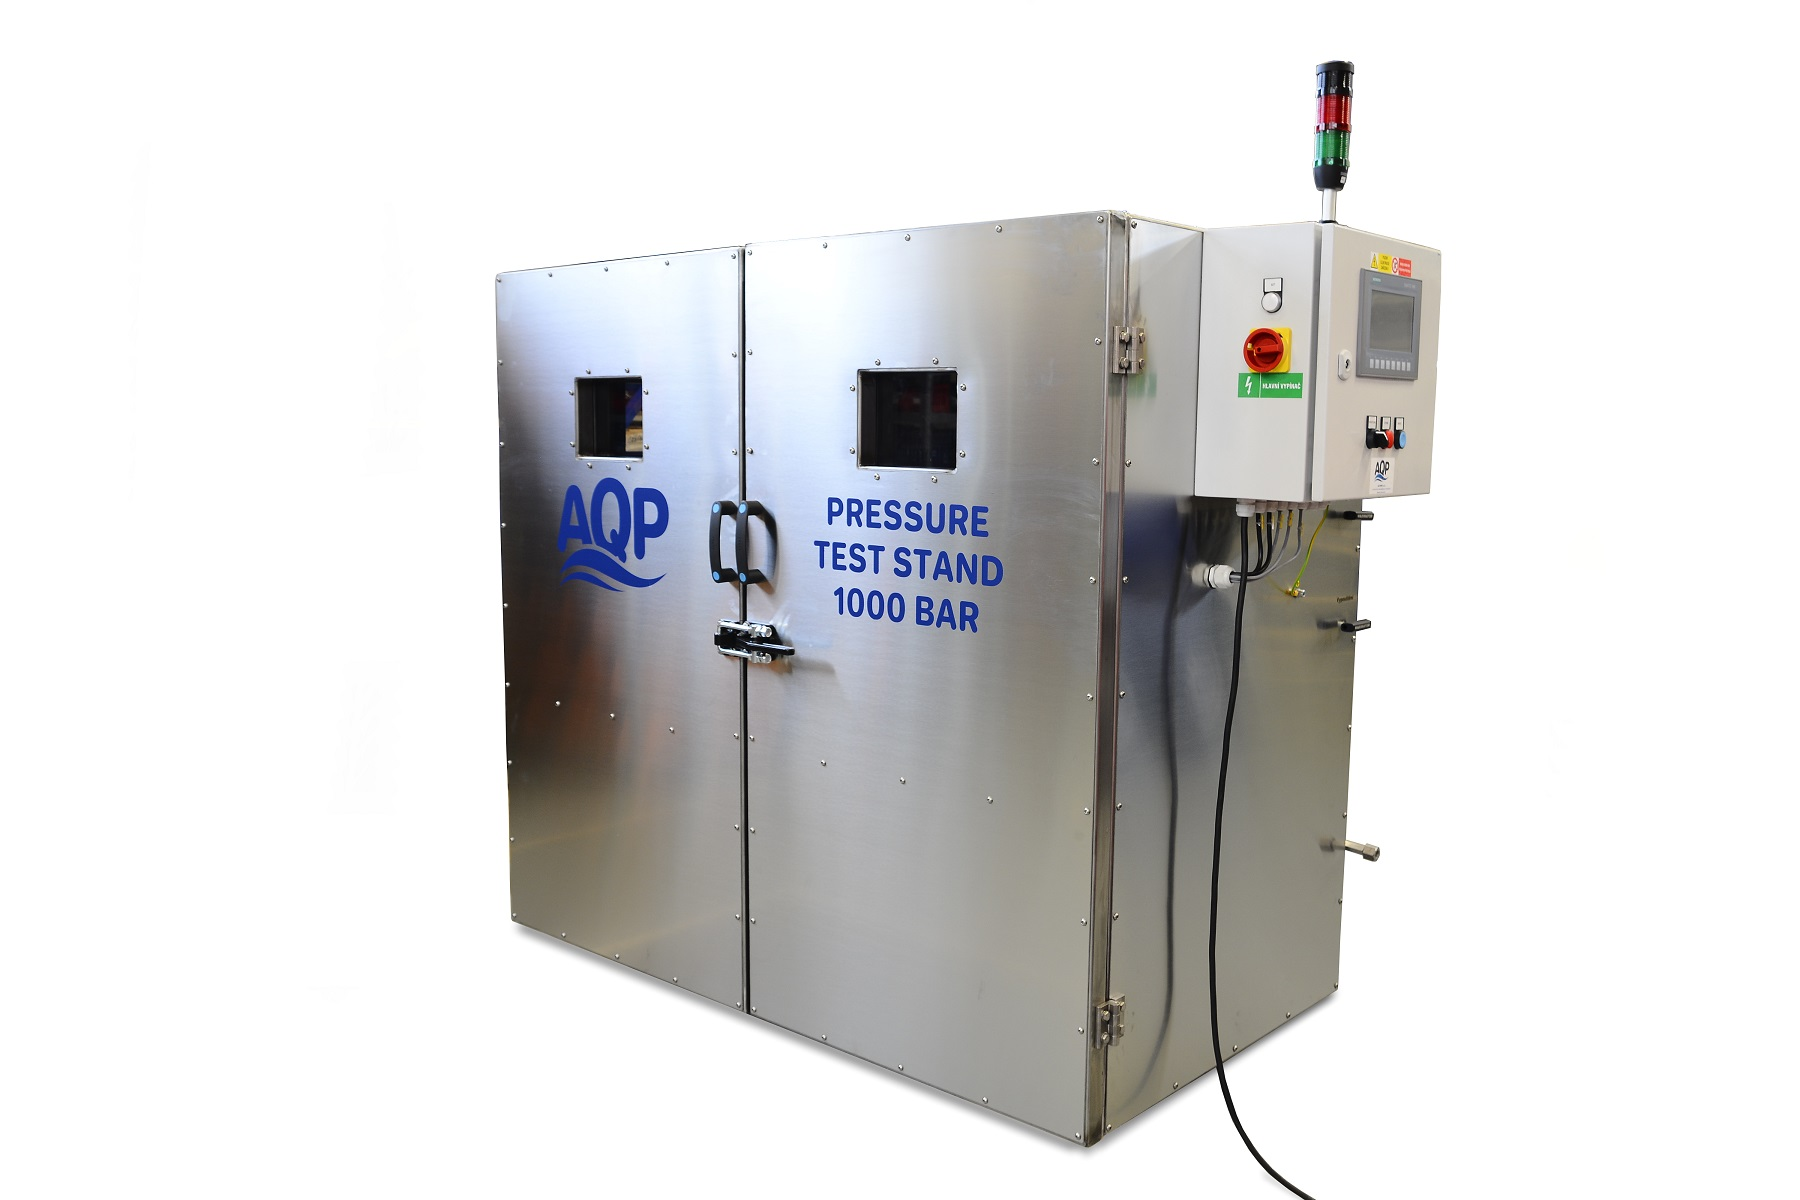 Pressure cabin for destructive pressure tests of air conditioning compressor bodies